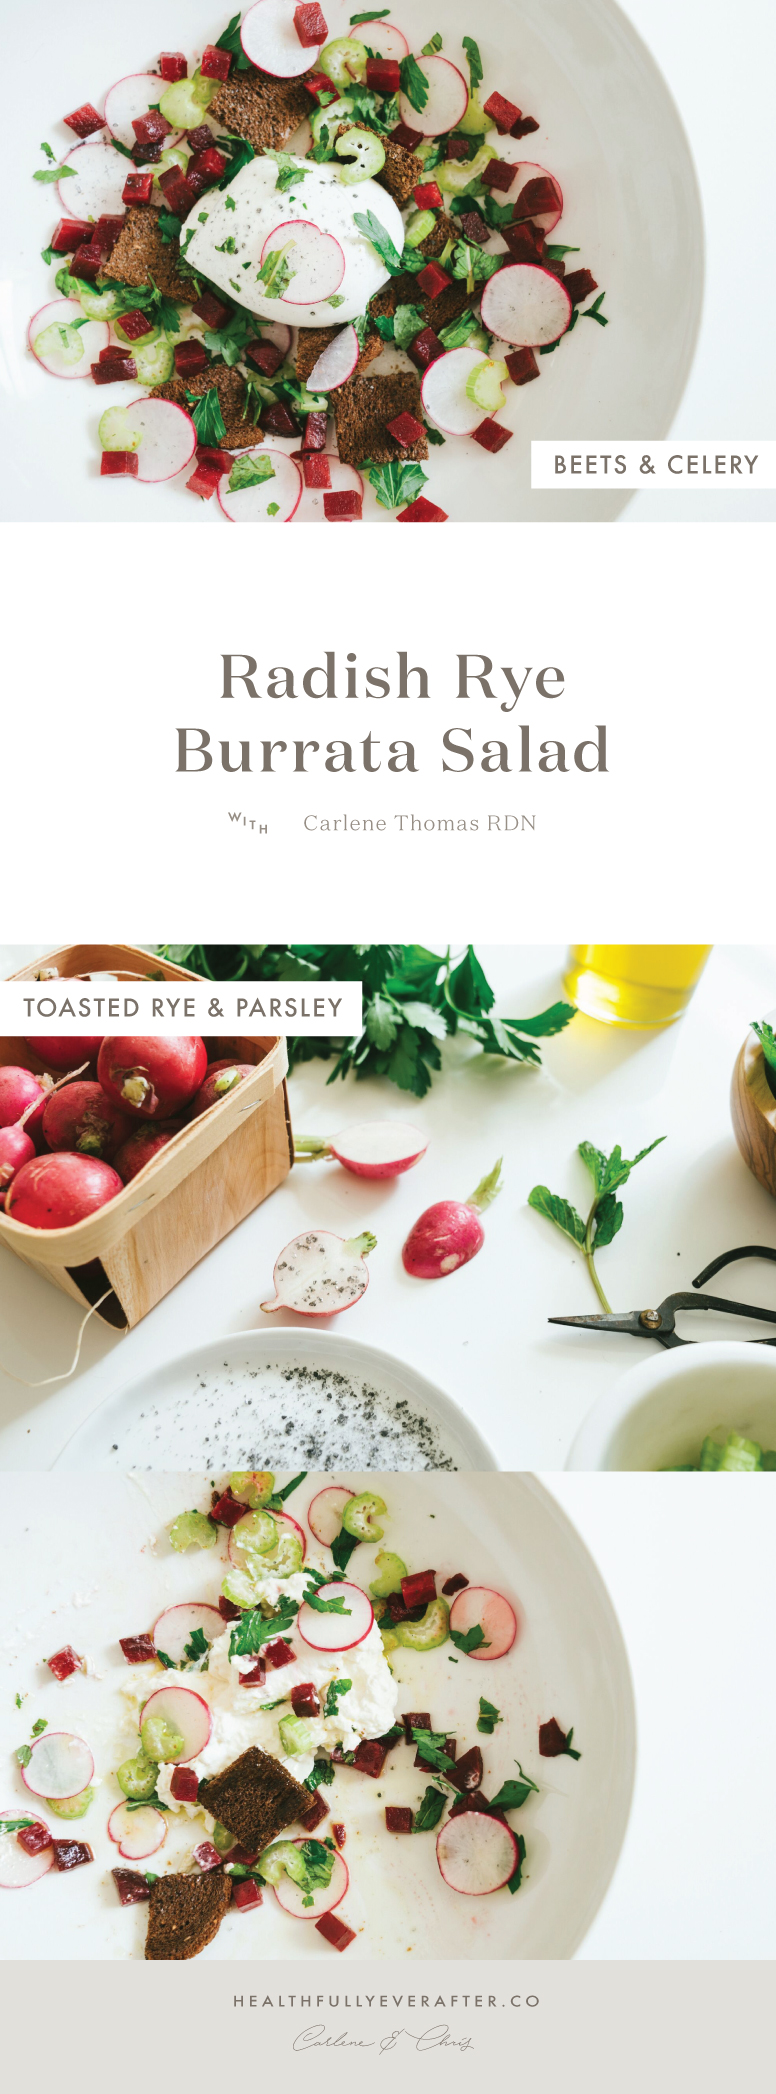 radish and rye burrata salad spring recipe